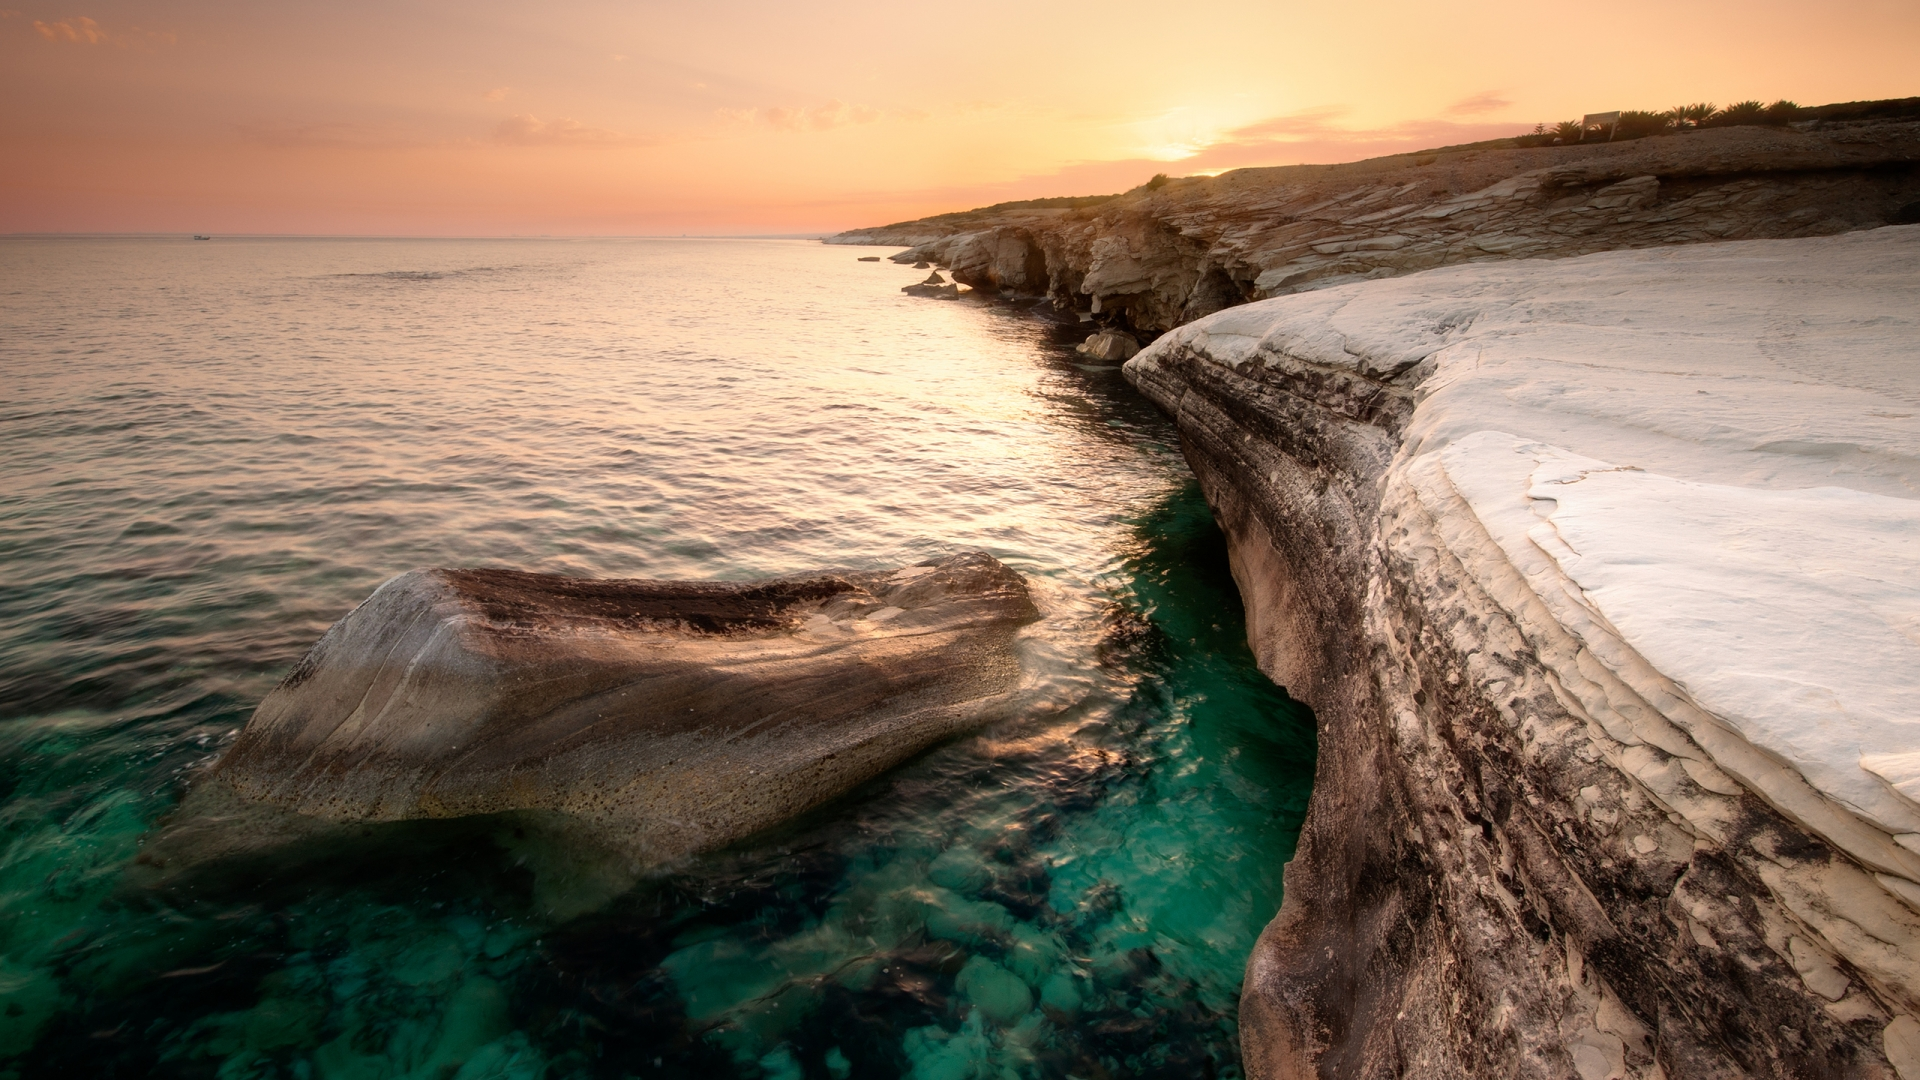 Cyprus-Zypern-Wallpaper-Beach-HD